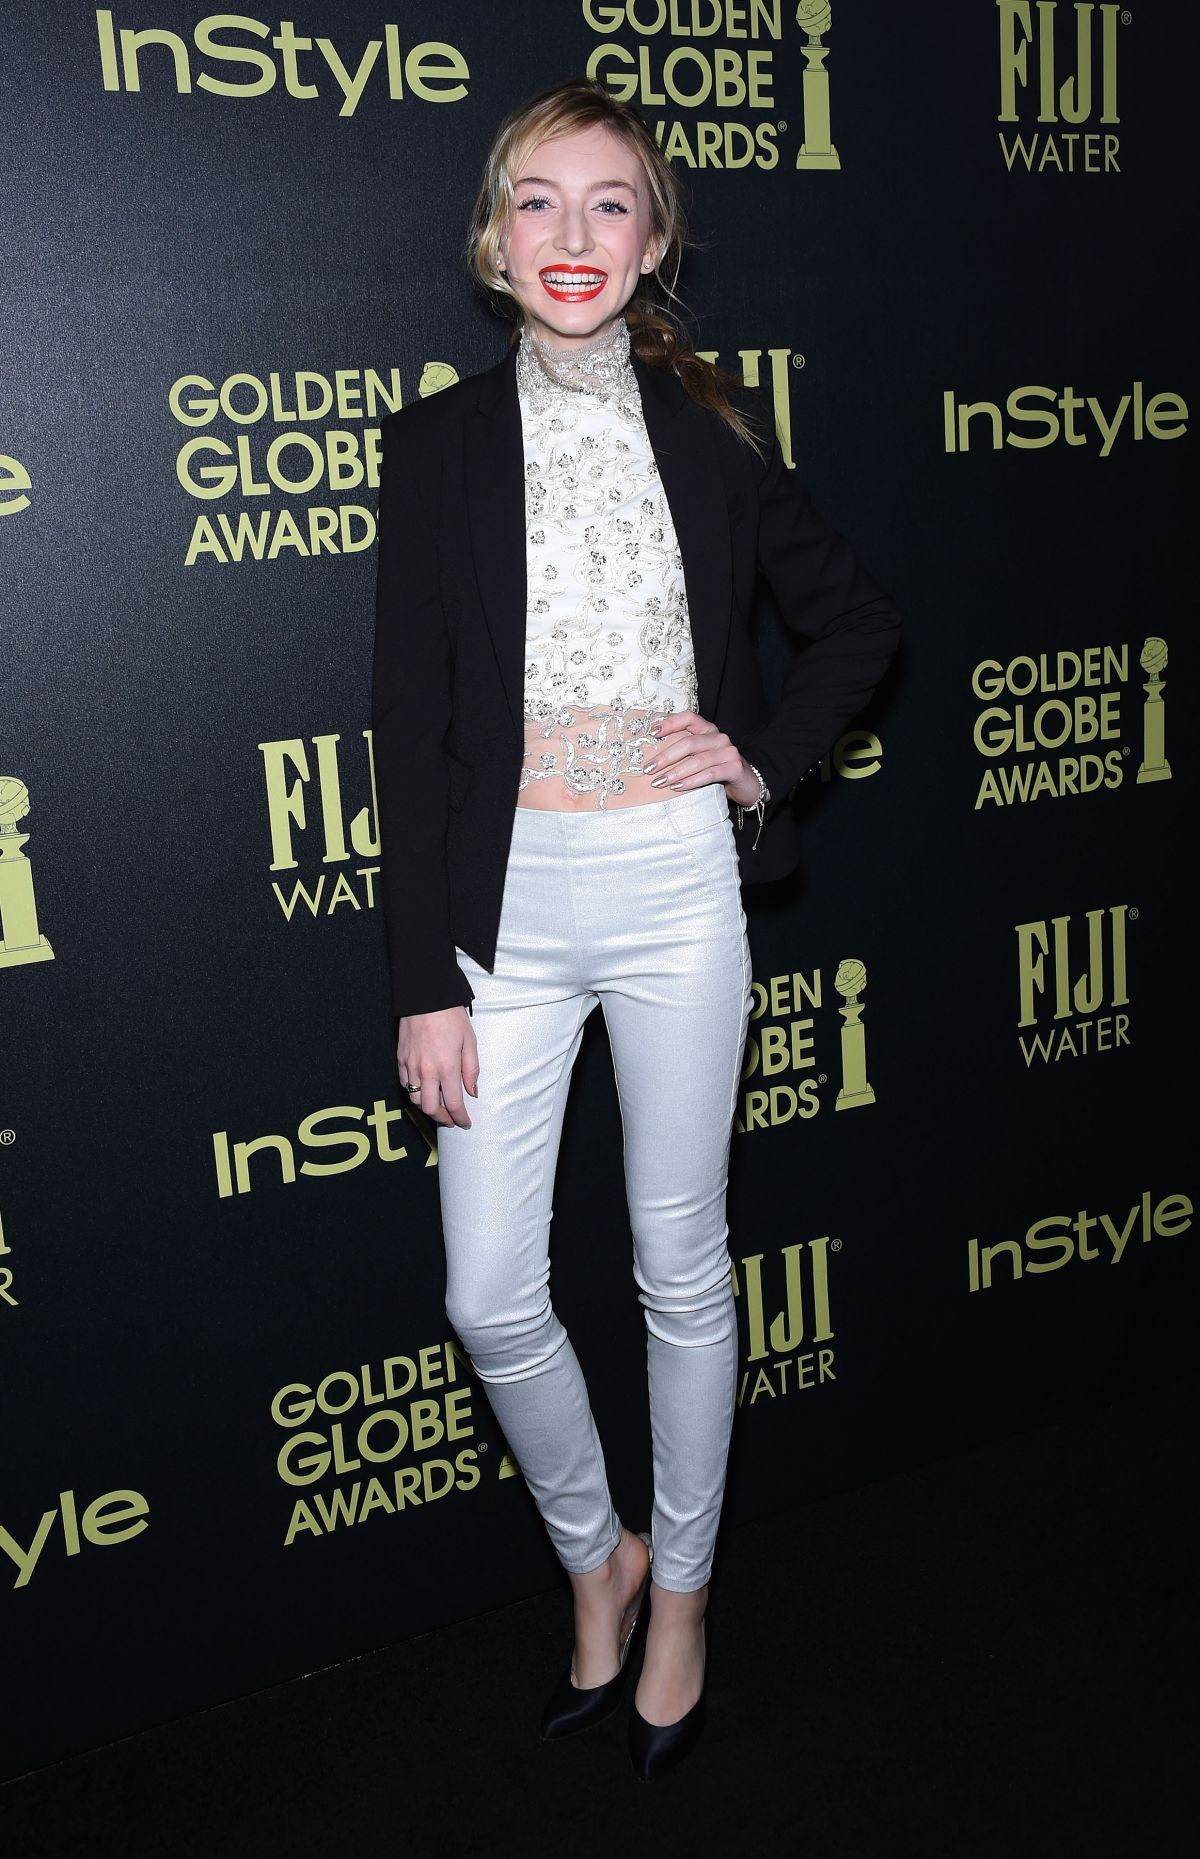 HANA HAYES at hfpa and Instyle Celebrate 2016 Golden Globe Award Season in West Hollywood 11/17/2015